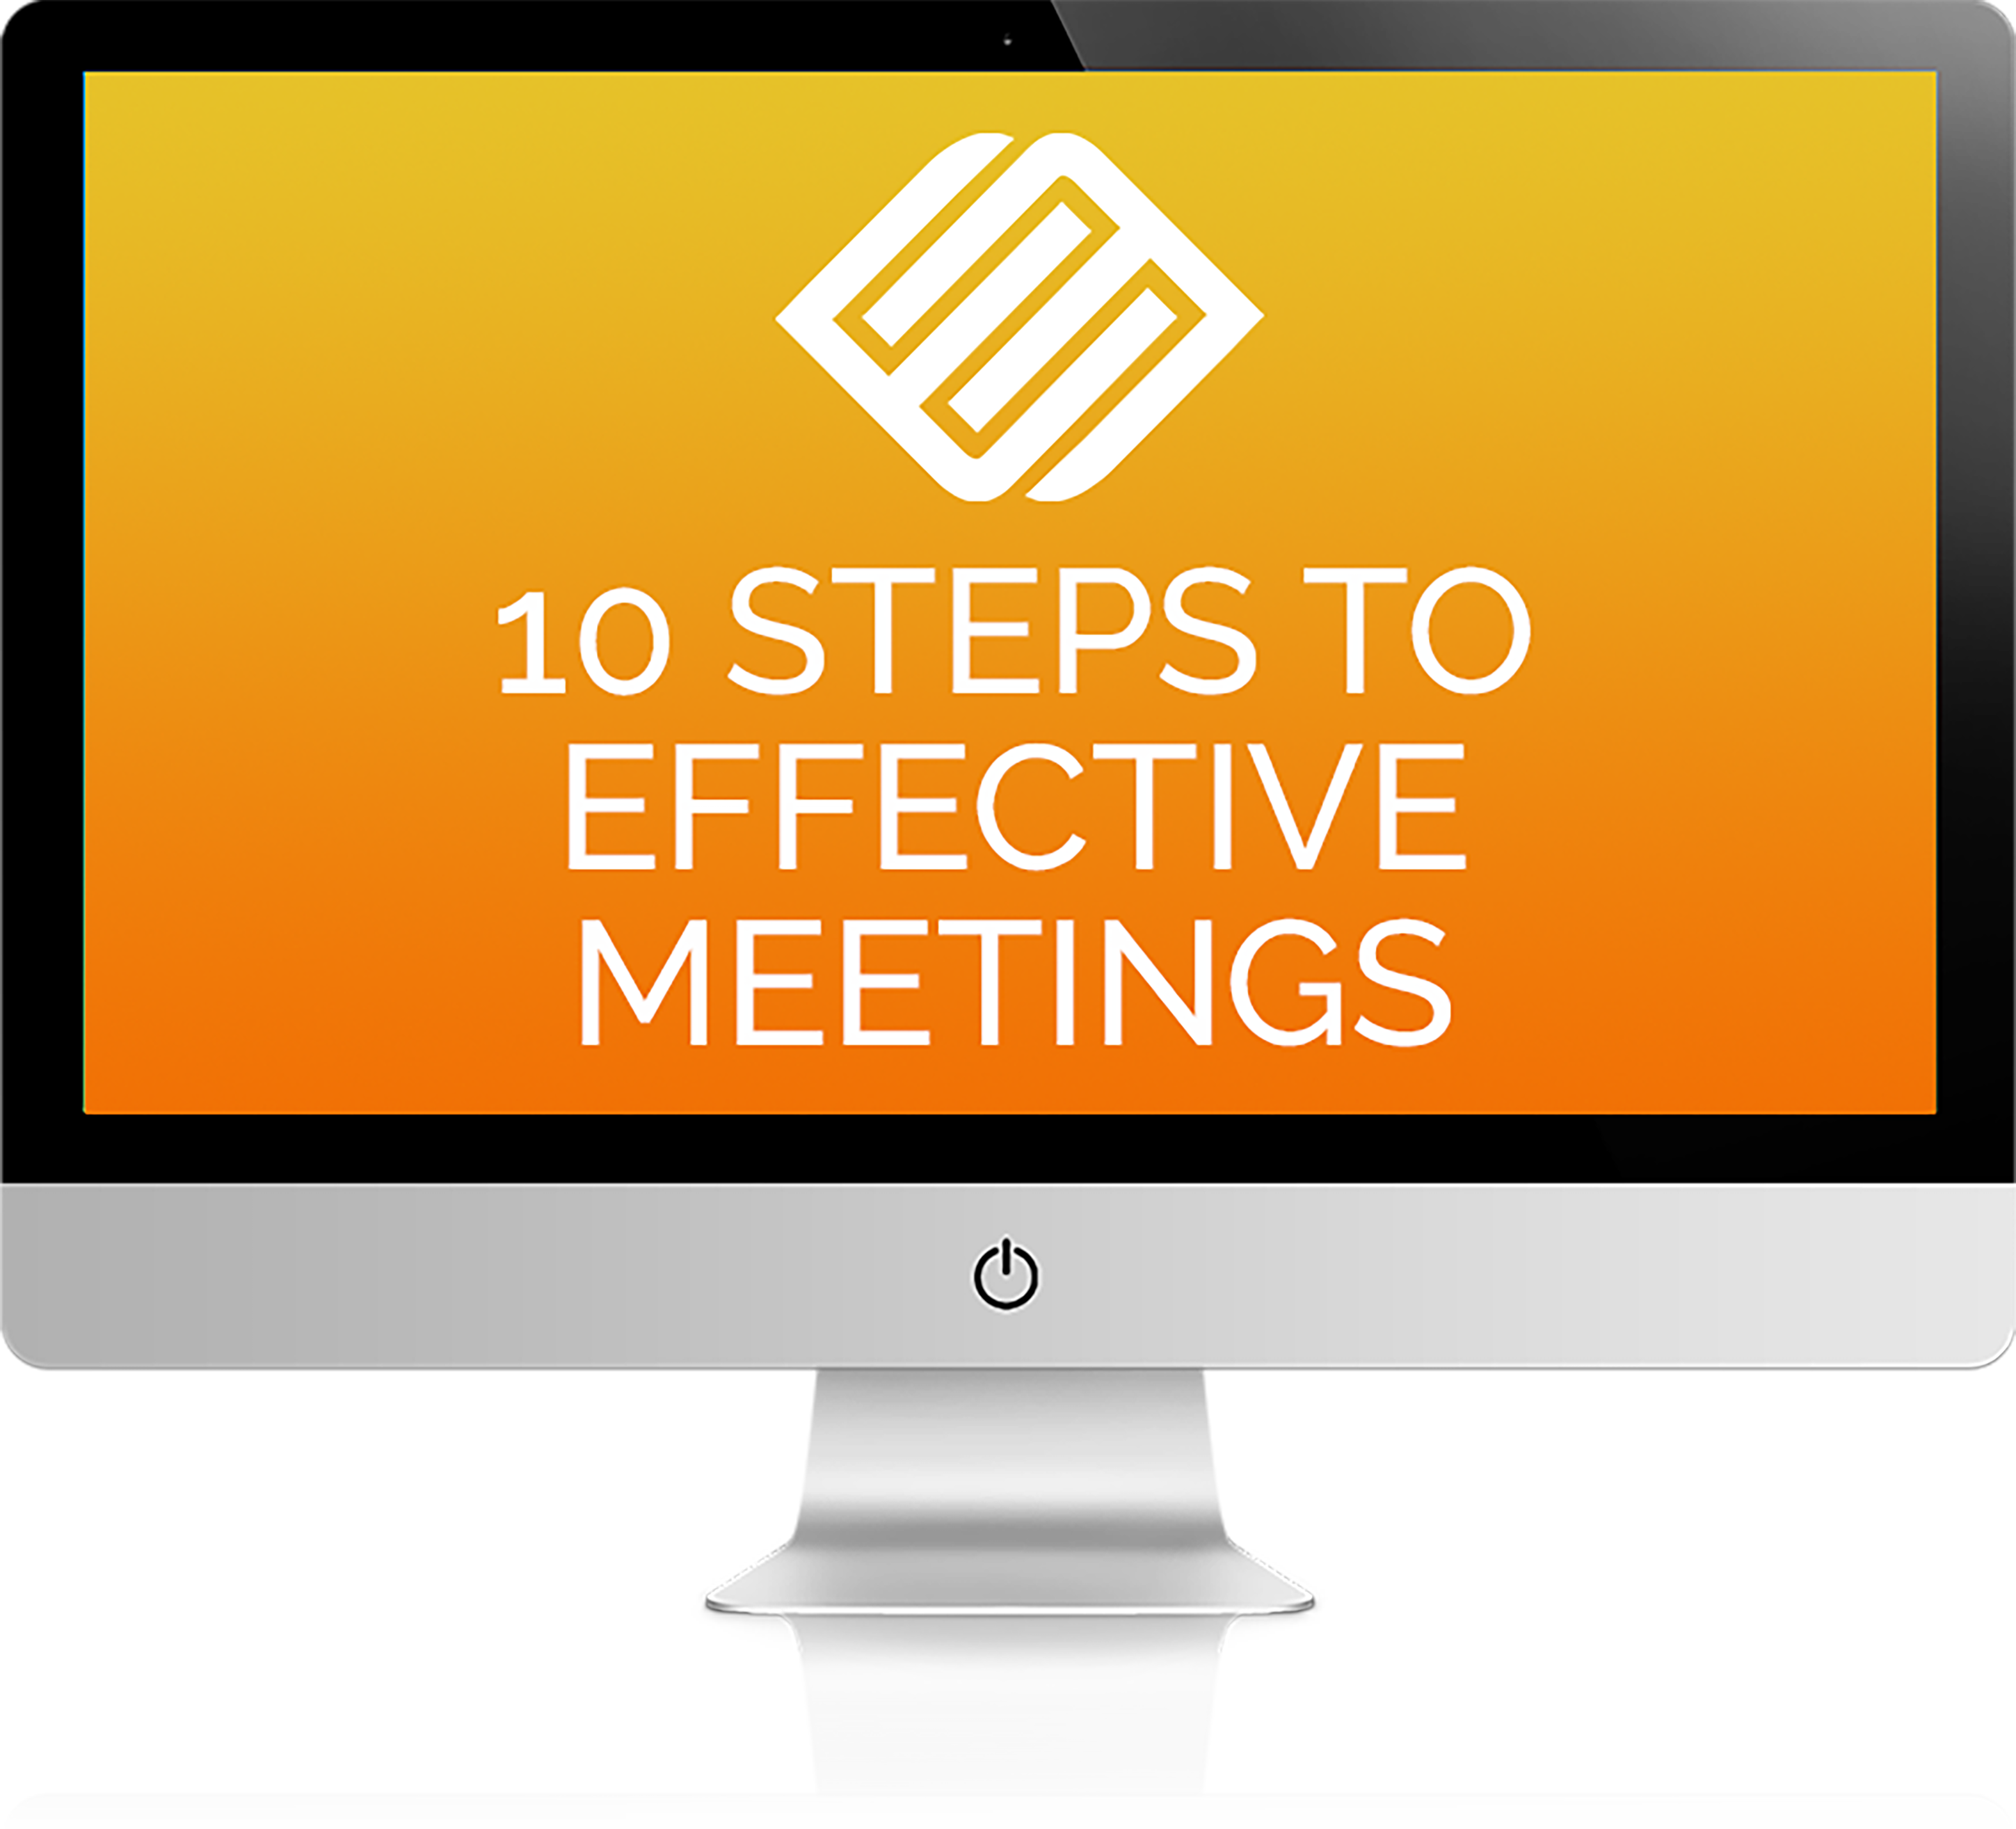 10-steps-to-effective-meetings.png